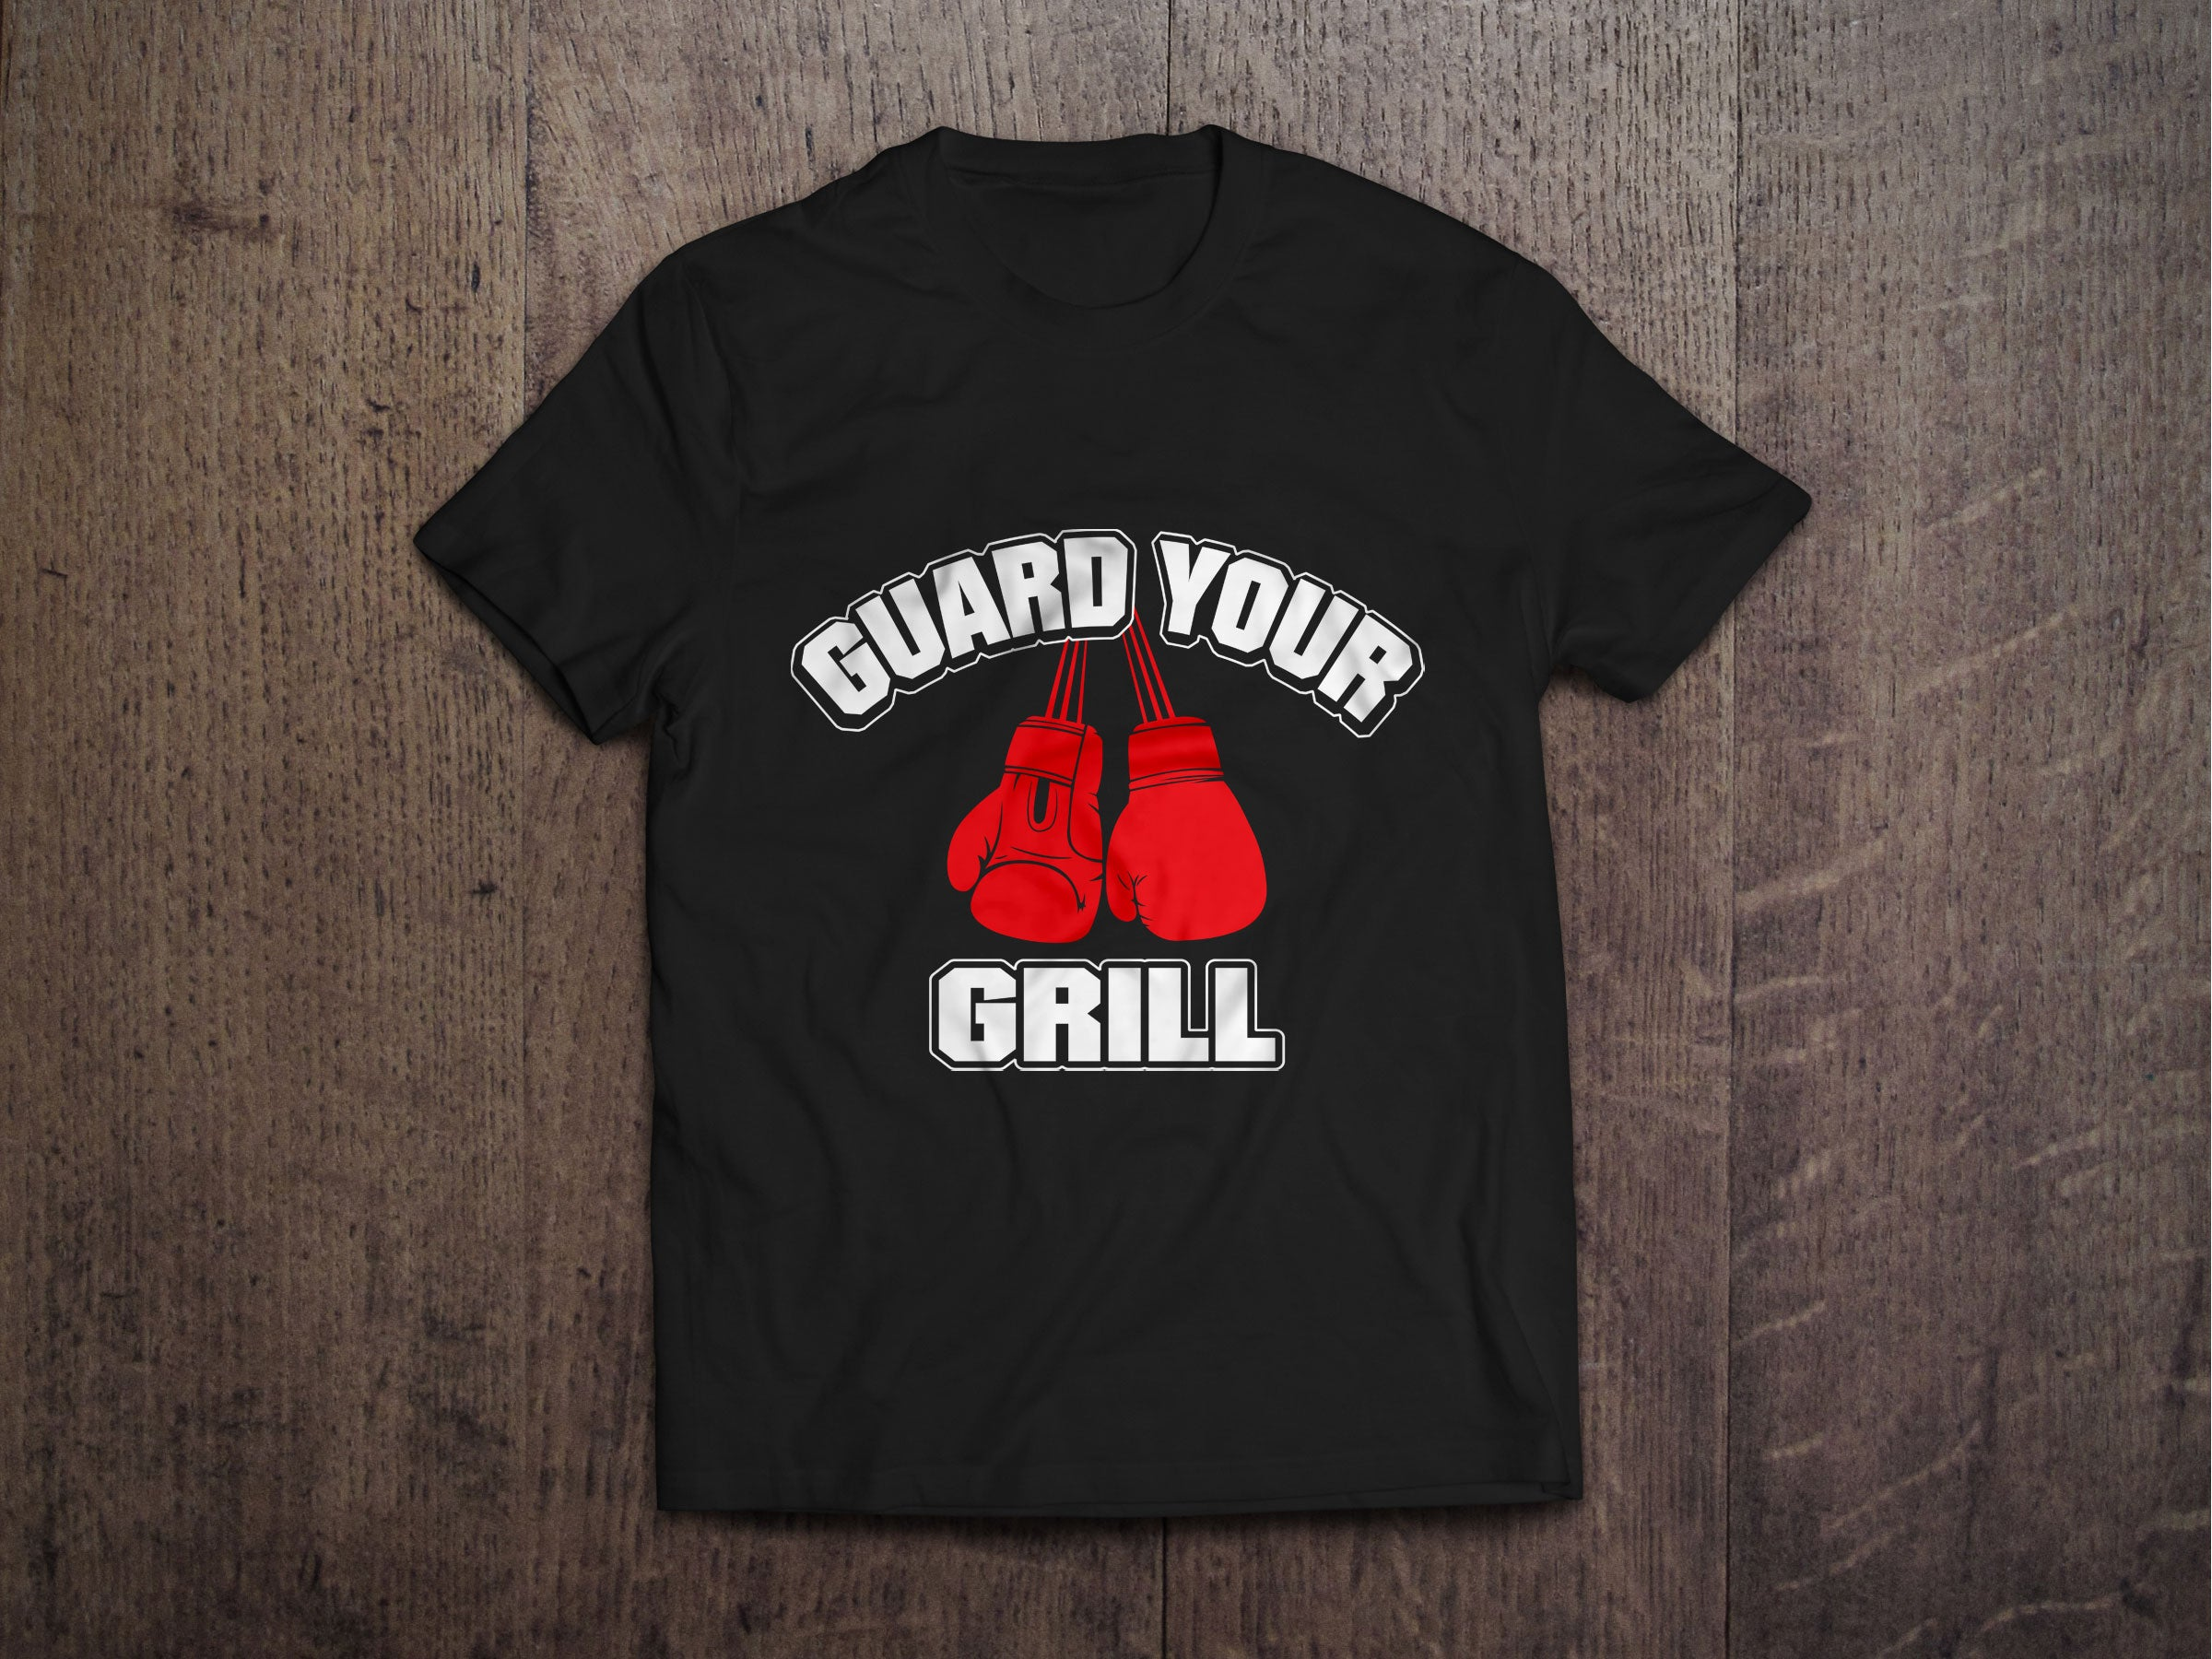 Guard Your Grill - Black